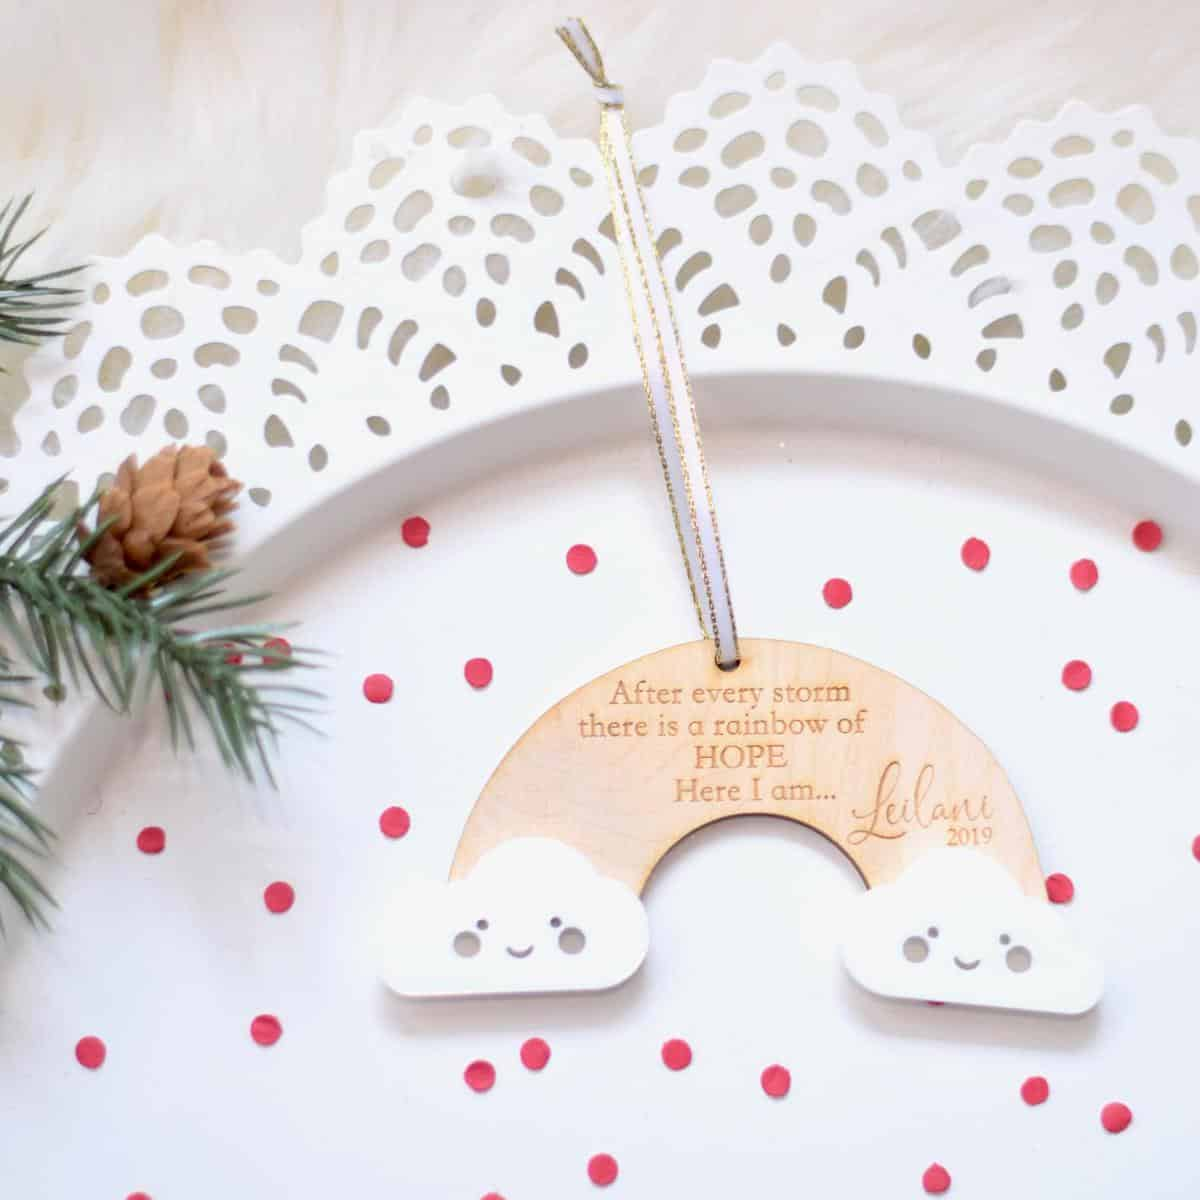 rainbow-shaped-wooden-christmas-ornament-in-original-wood-color-with-clouds-on-each-end-of-the-rainbow-sitting-on-top-of-a-white-tray-with-red-polka-dots-with-a-sprig-of-pine-and-a-small-pine-cone-resting-on-the-side-of-the-plate-the-wooden-ornament-says-after-every-storm-there-is-a-rainbow-of-hope-here-I-am-and-is-customized-with-babys-name-and-the-year